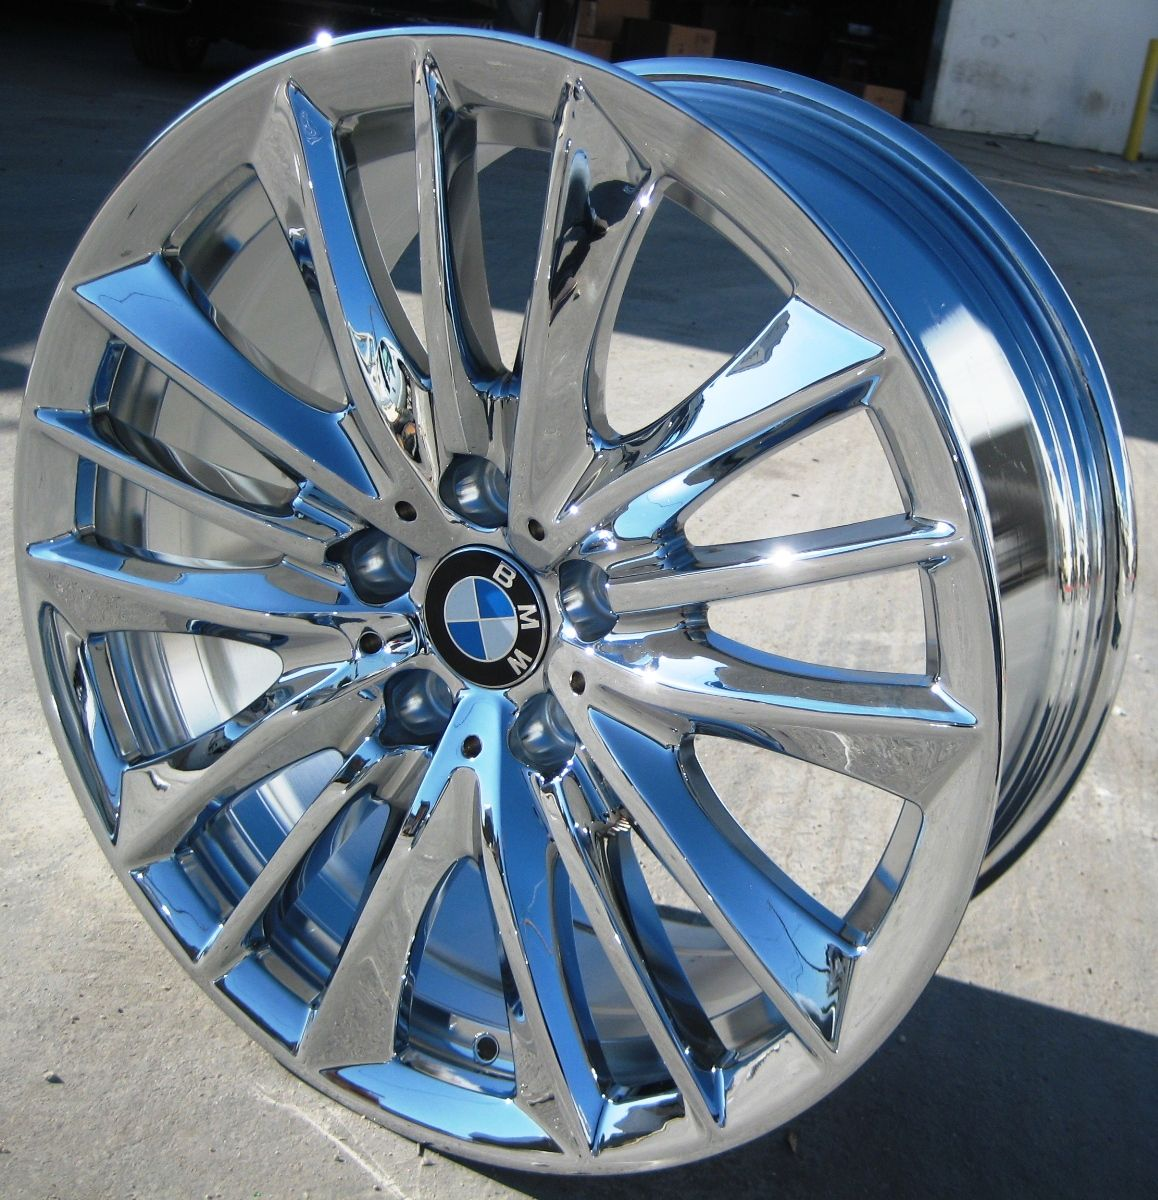 FACTORY BMW 550xi 528i 535i 550i OEM CHROME WHEELS RIMS STYLE # 332